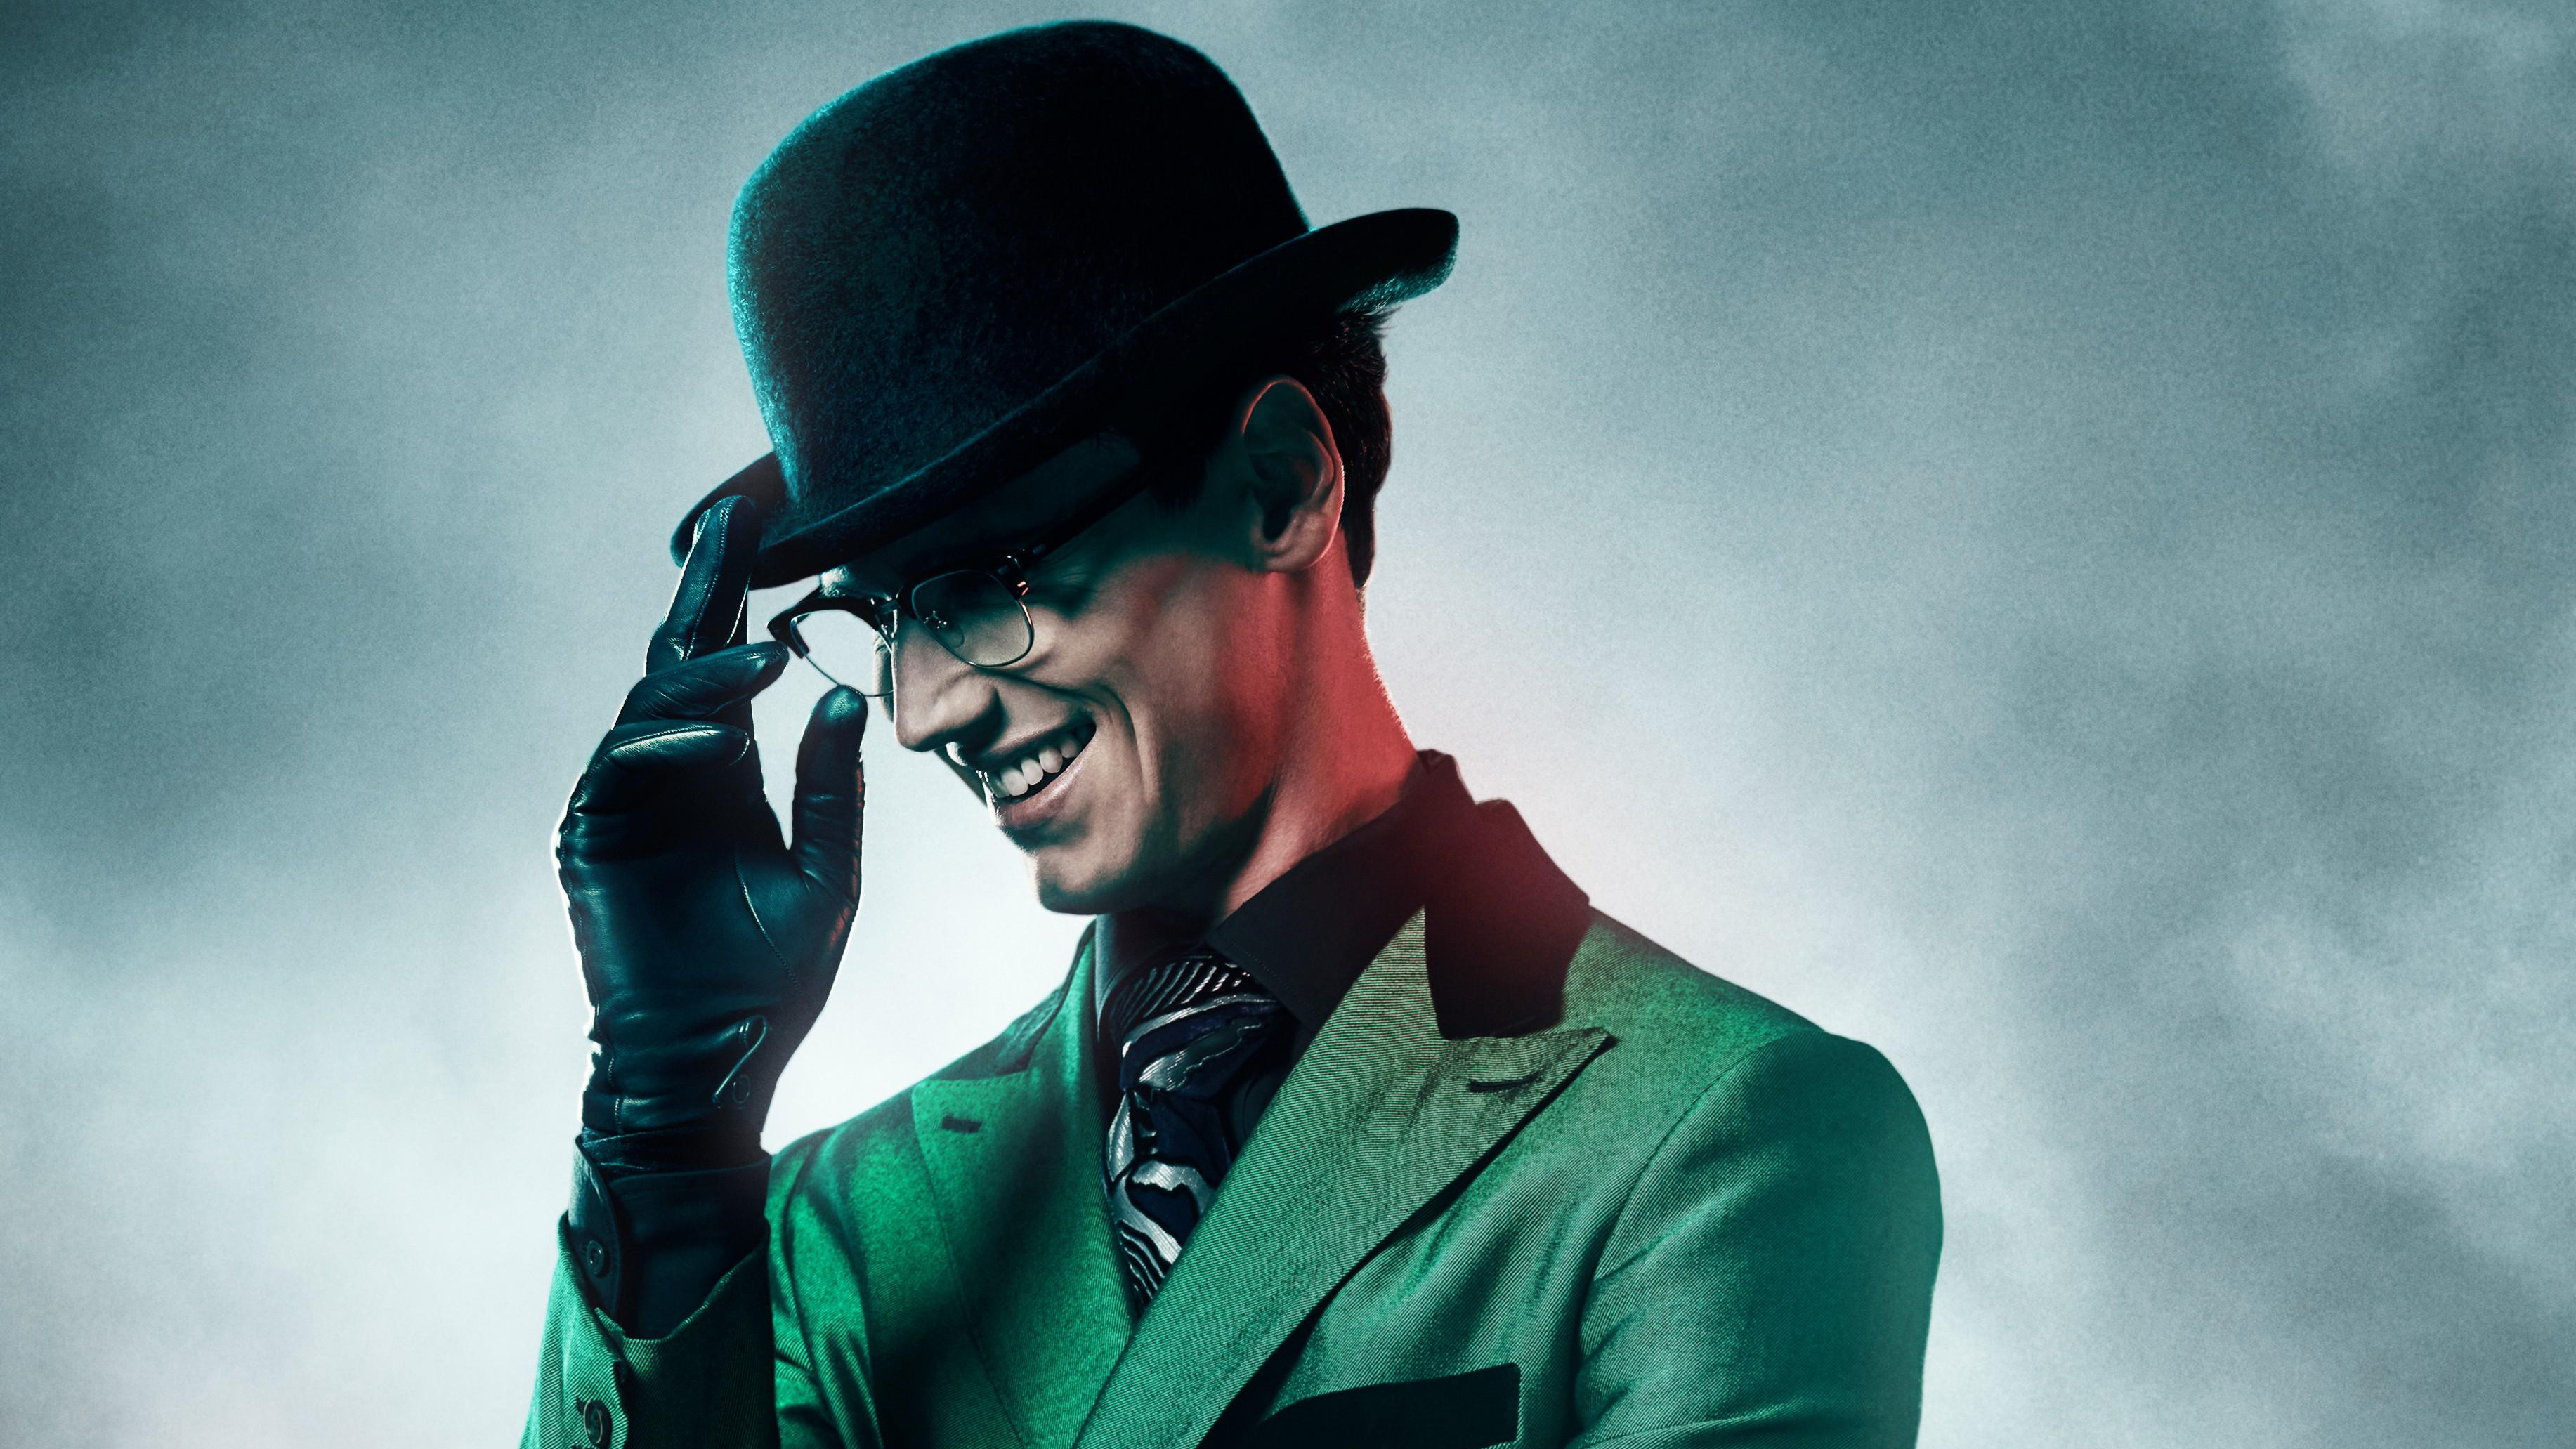 1600x900 cory michael smith as the riddler in gotham - Gotham wallpaper ...